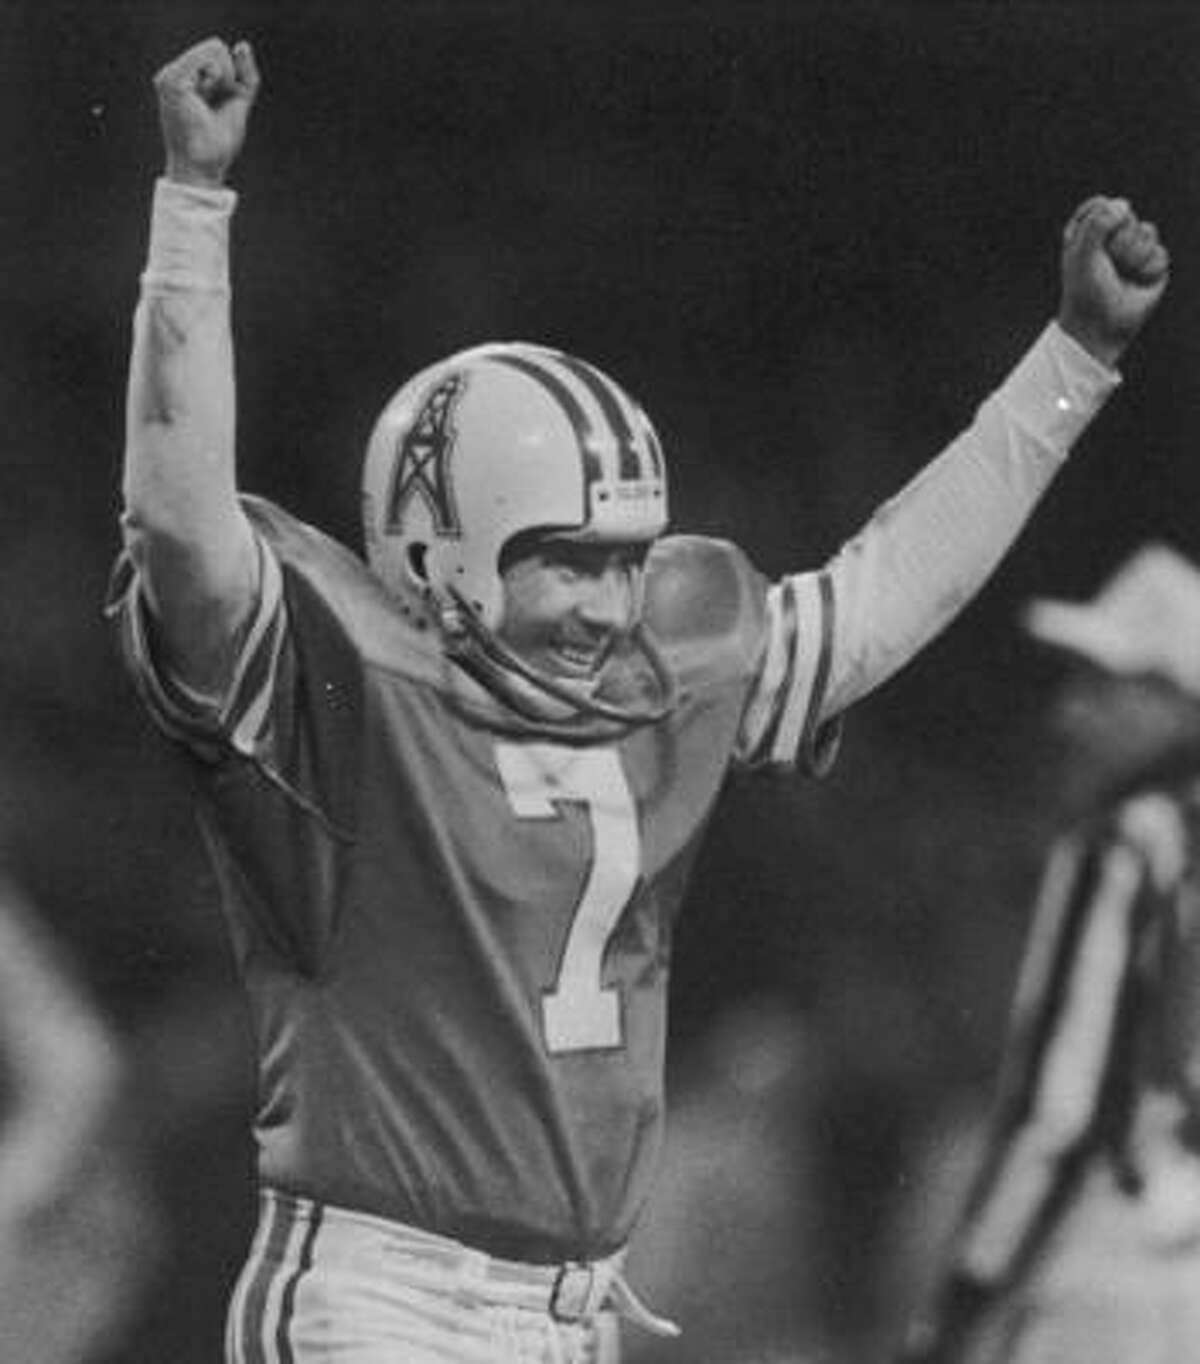 1987: Oilers 23, Seahawks 20 (OT) Warren Moon threw for 273 yards and a touchdown in his first playoff game, and Tony Zendejas made a 42-yard field goal with 7:55 left in overtime. The Seahawks had tied the score with just 26 seconds left in regulation on Dave Krieg's 12-yard TD pass to Steve Largent.